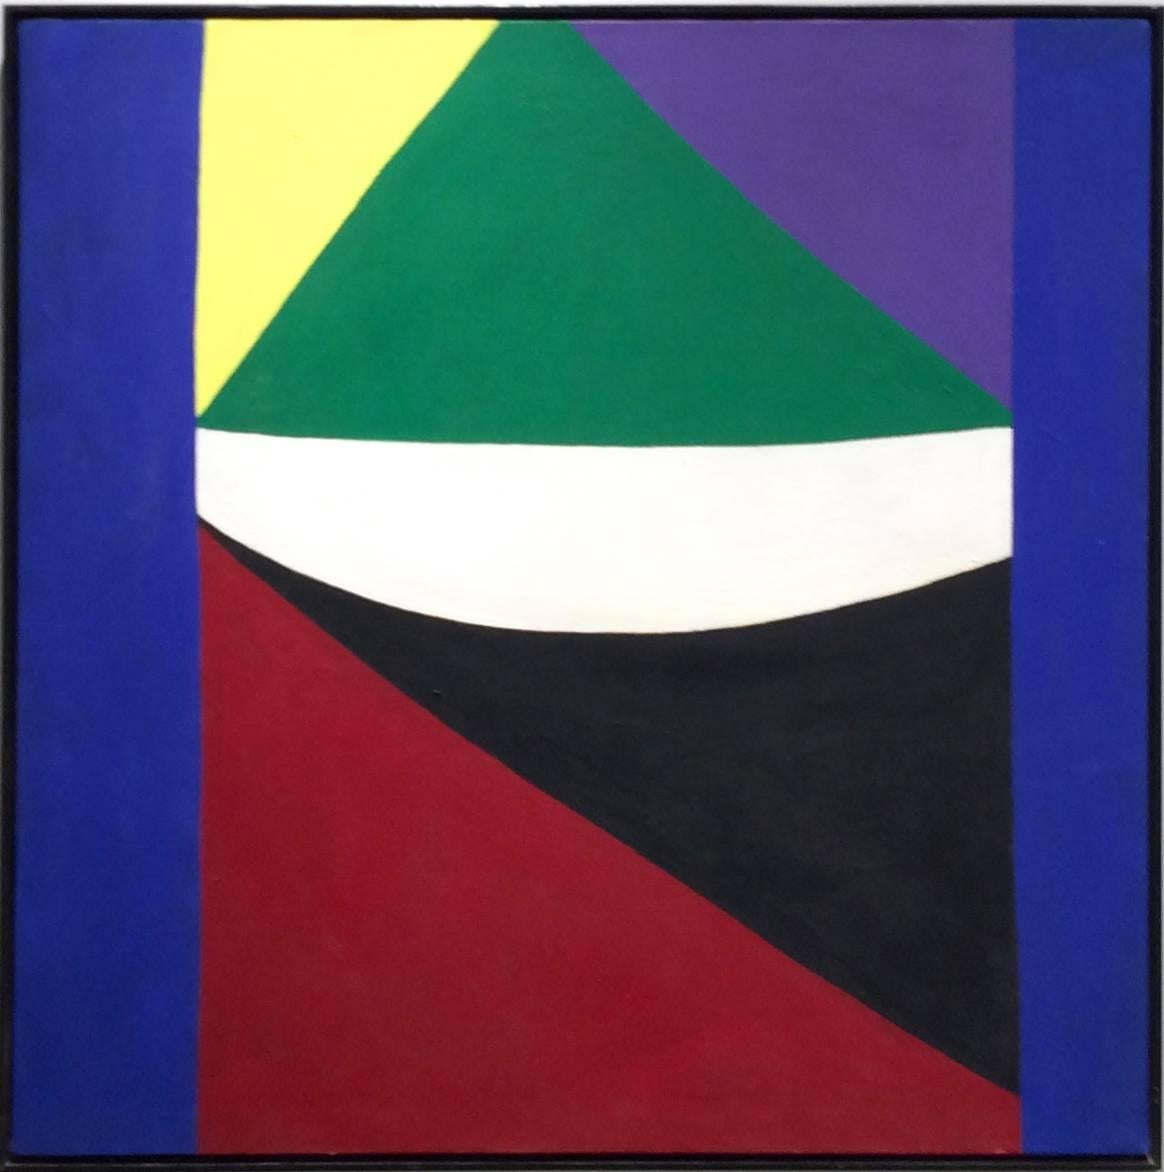 Hammock I (Square Abstract Geometric Painting on Canvas in Bold Primary Colors)